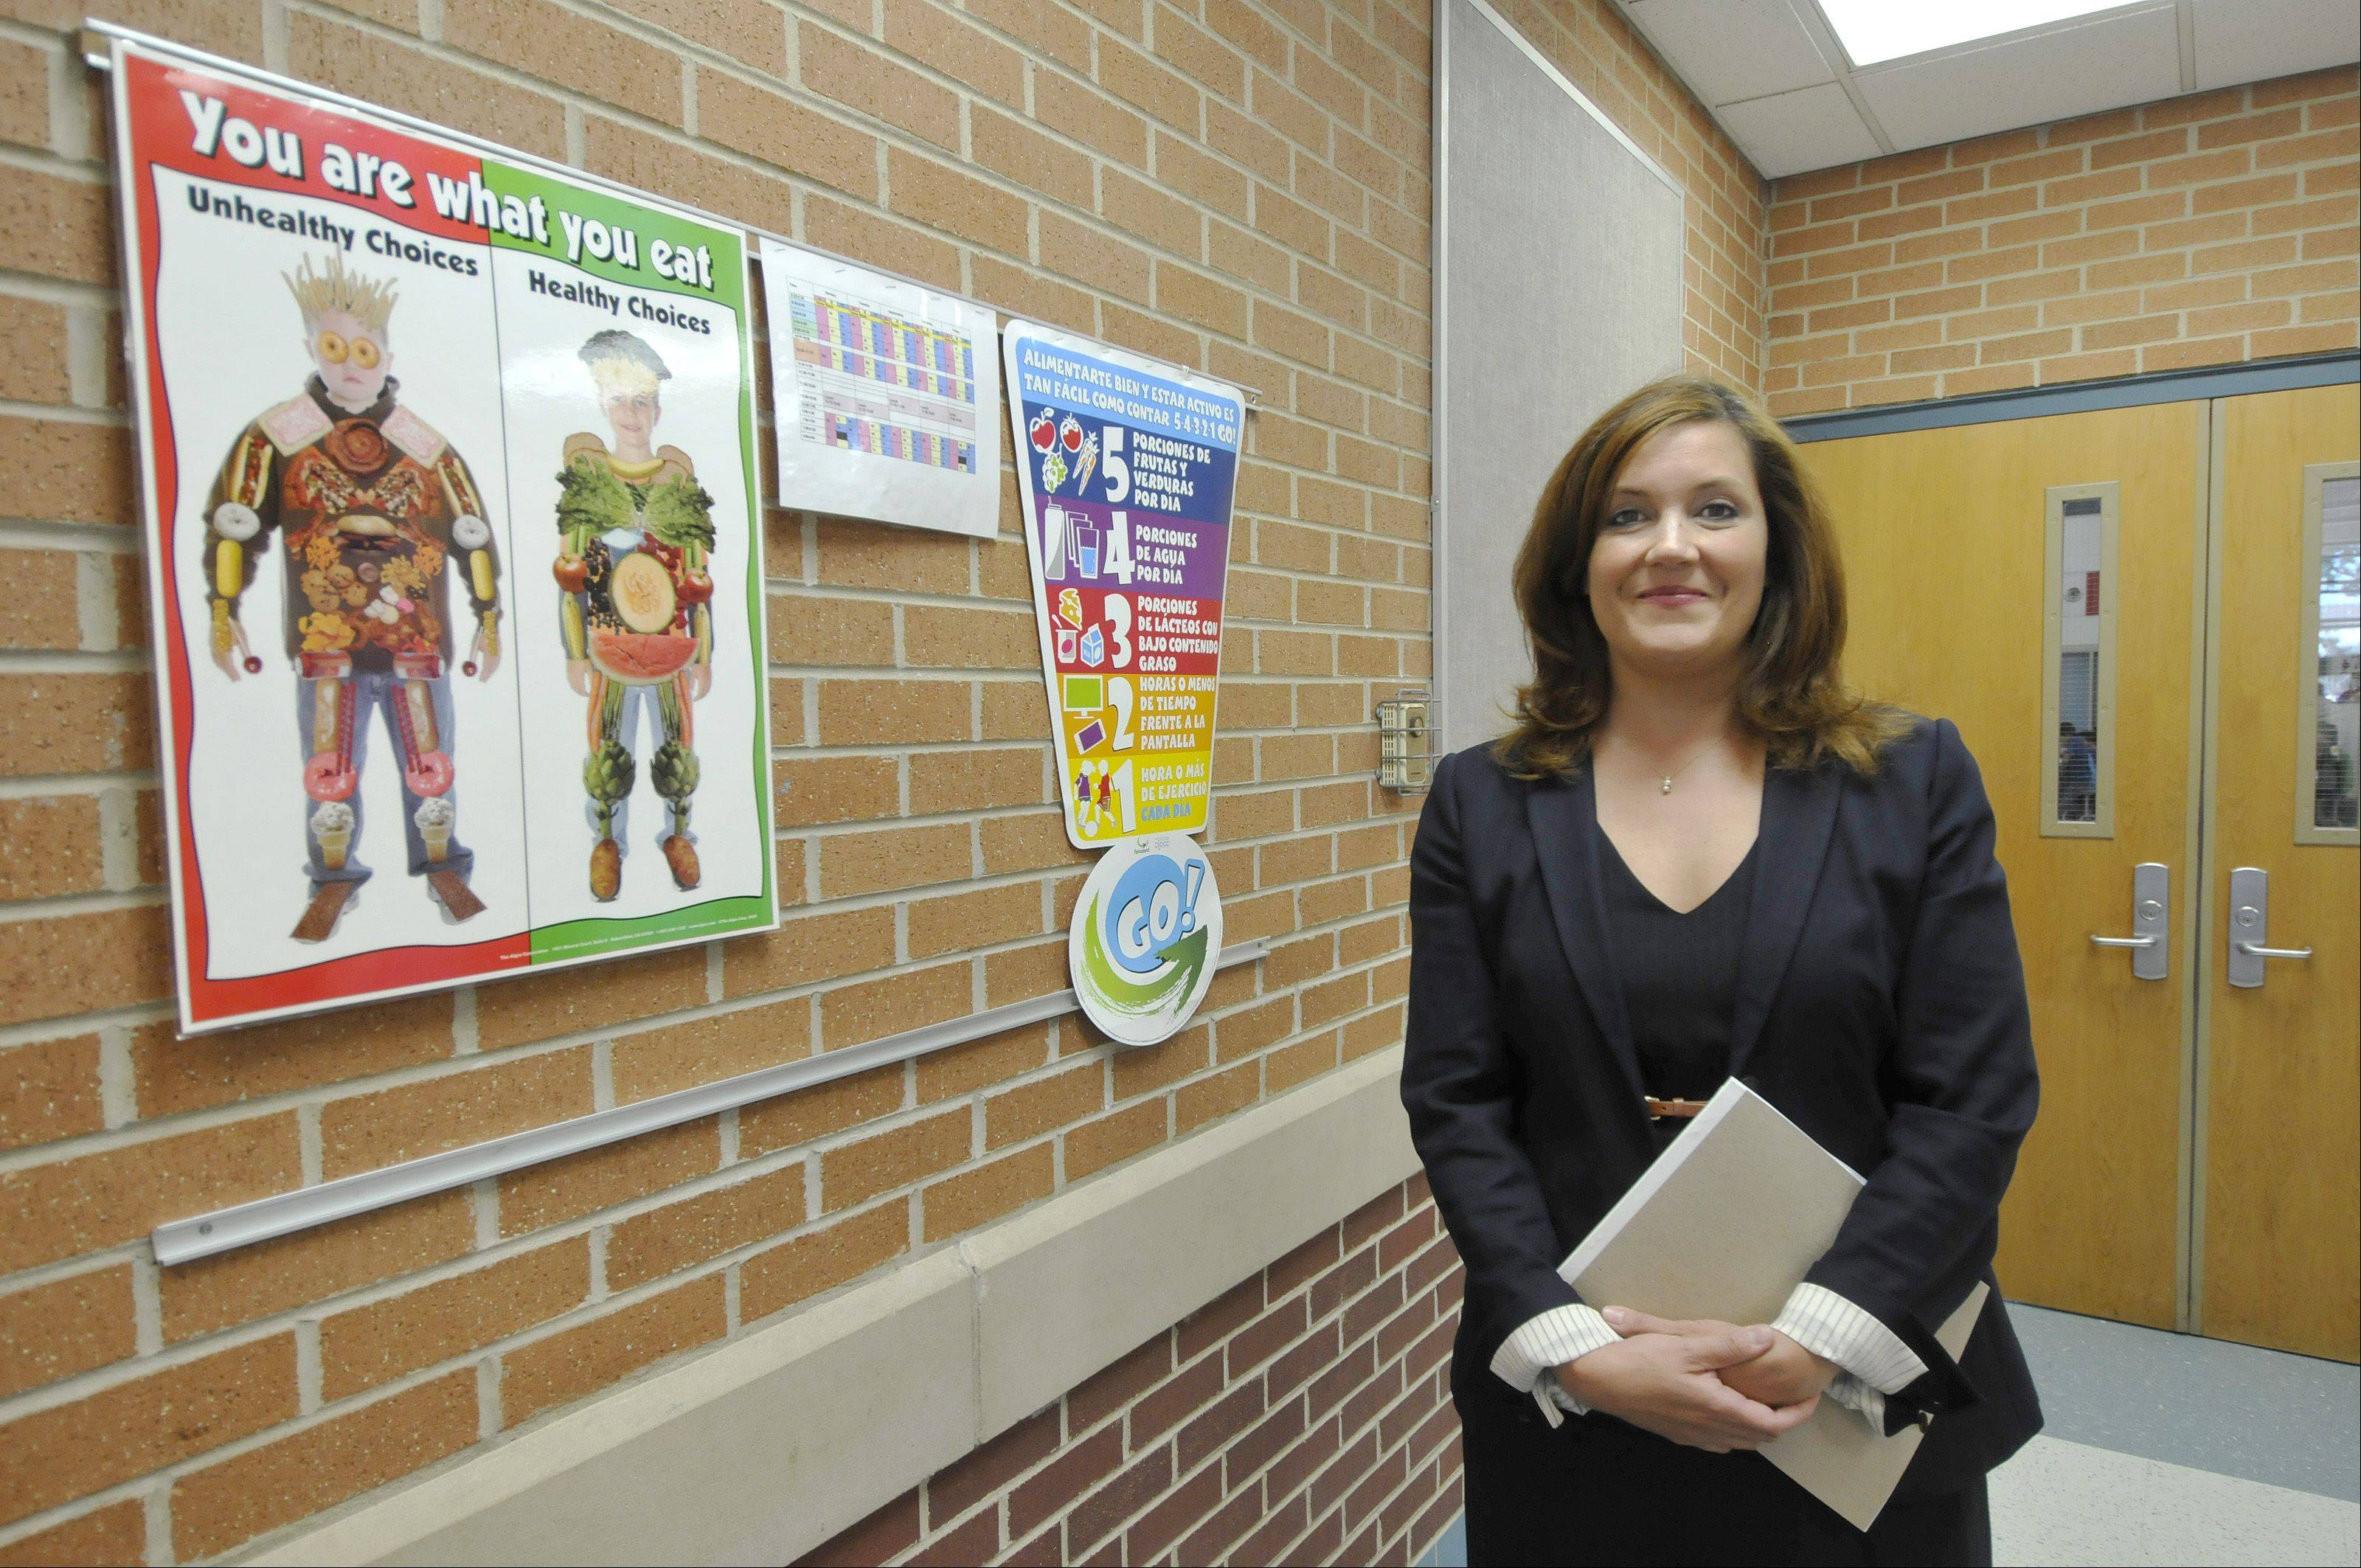 Kristina Davis, West Chicago Elementary District 33's assistant superintendent for learning, talks about what steps the district has taken to help low-income students. District 33 saw the largest growth in its low-income population of any district in the Daily Herald circulation area.